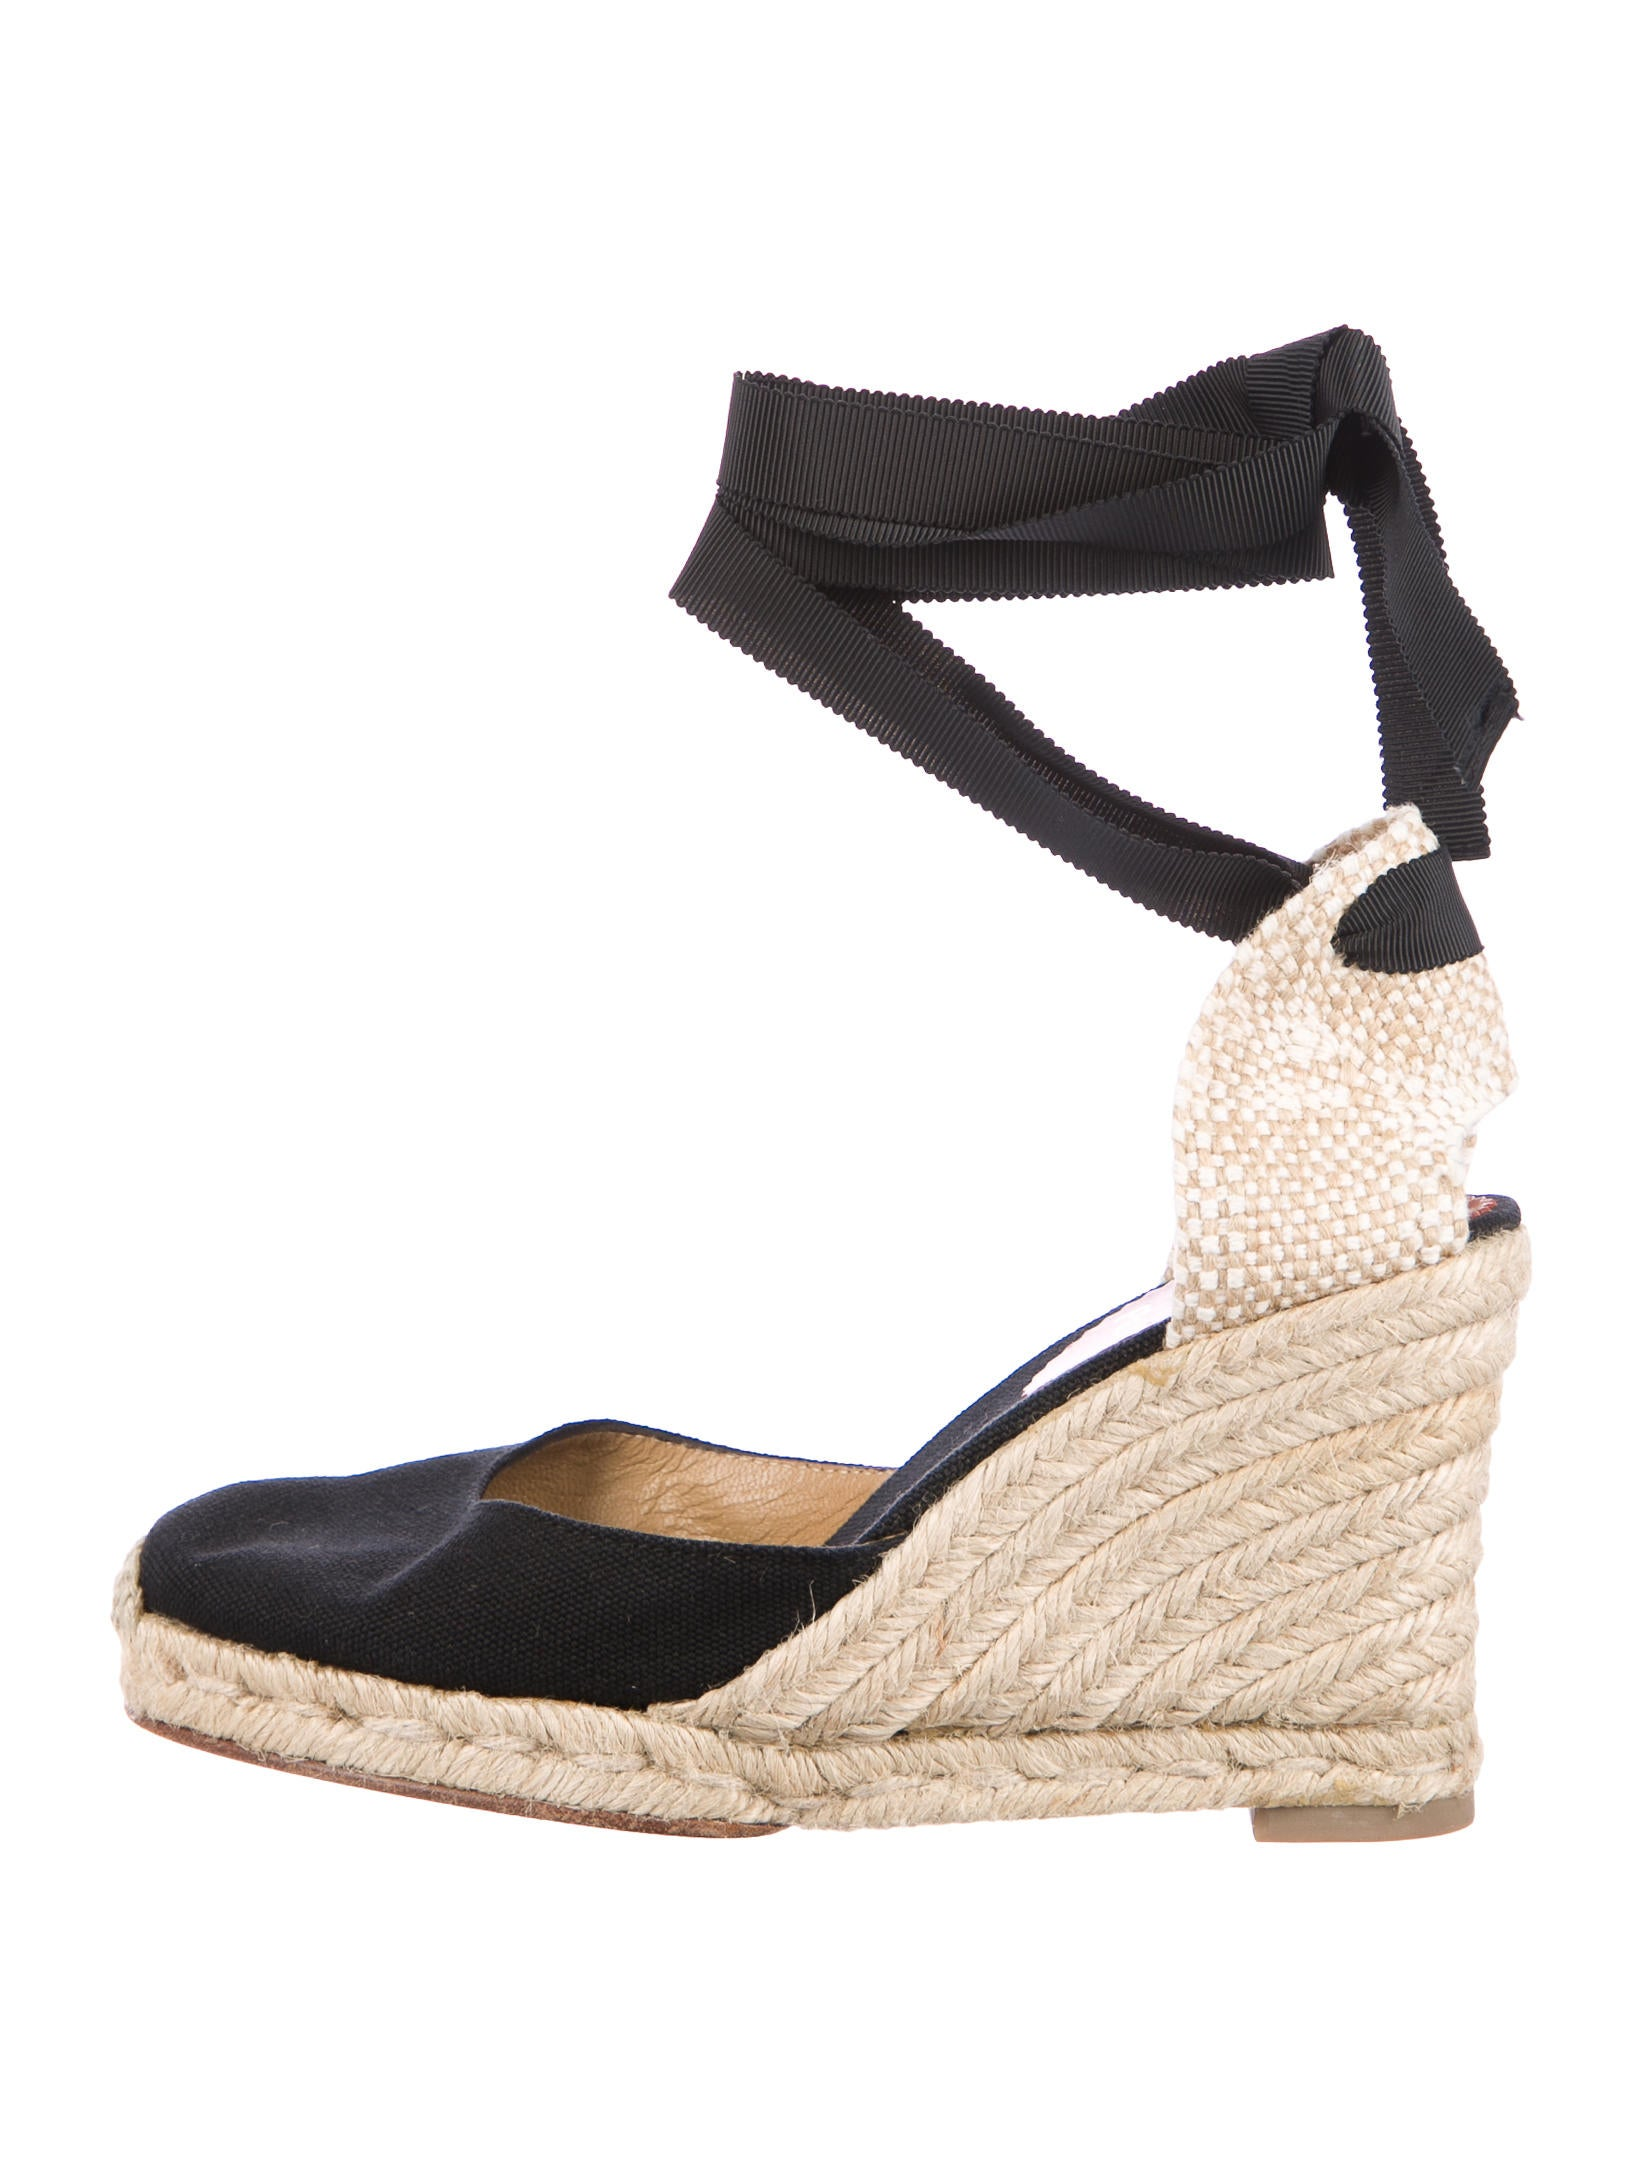 Christian Louboutin Espadrille Wrap-Around Wedges low cost very cheap price clearance best sale cheap sale discounts clearance 2015 new 5vOrW